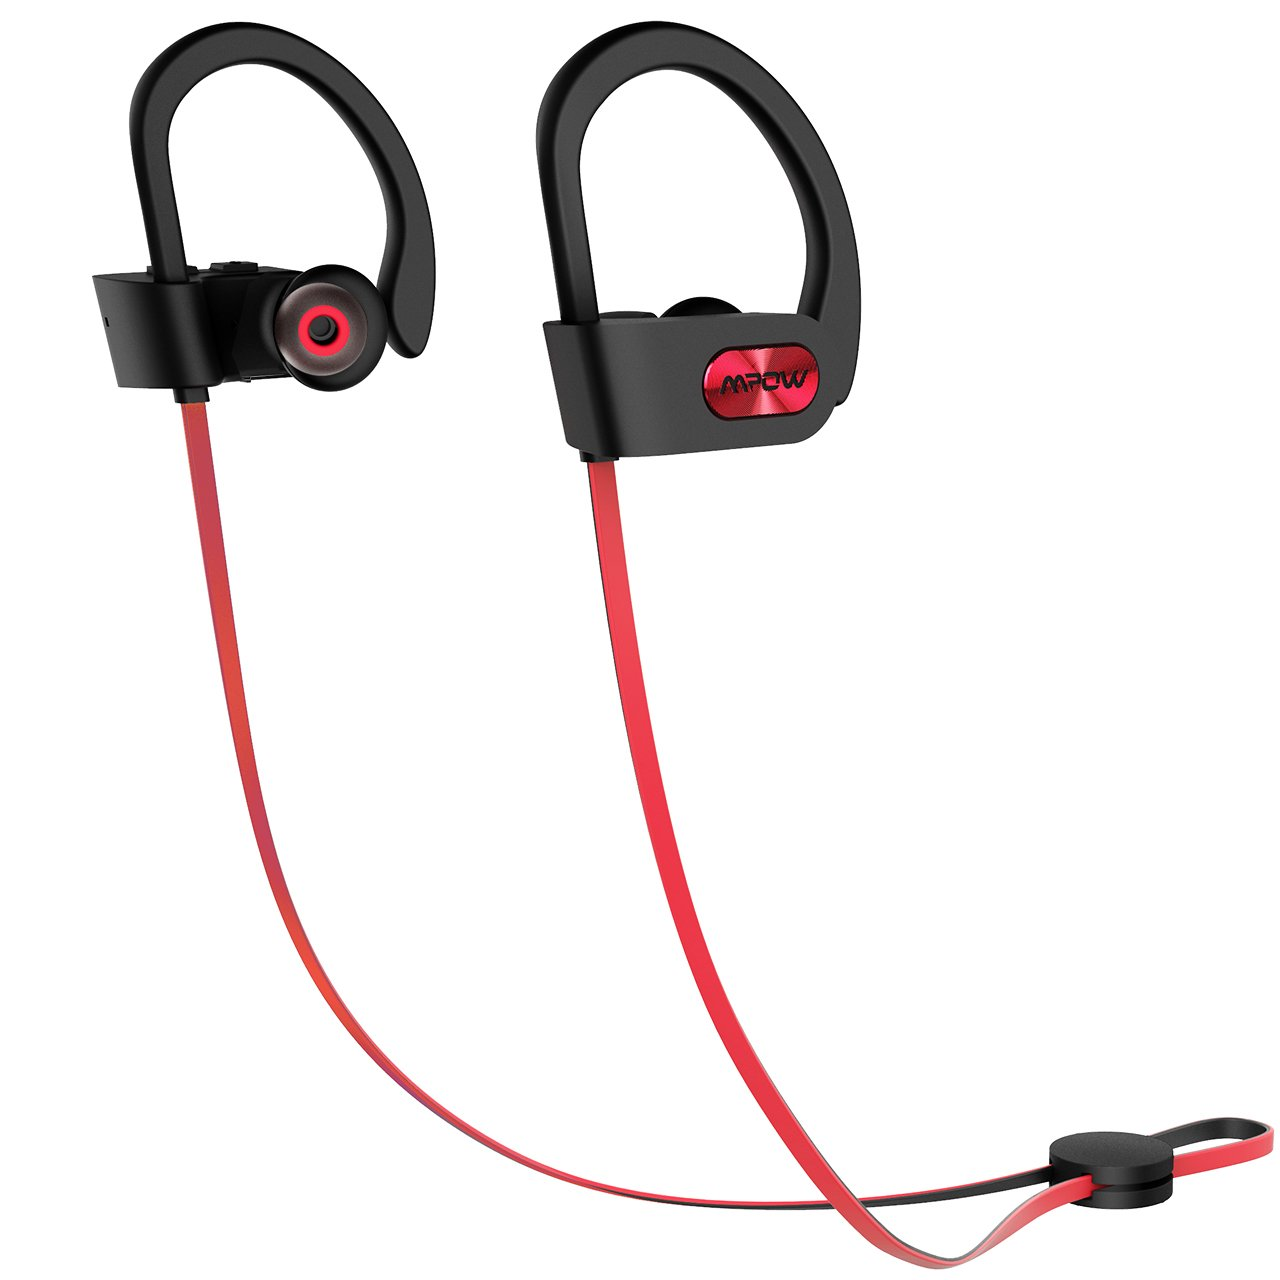 Mpow Flame Bluetooth Headphones, Waterproof IPX7 Wireless Earbuds Sport, Richer Bass HD Stereo Earphones w/Mic for Gym Running Workout 7-9 Hours Battery Noise Cancelling Headsets(2018 New Version)